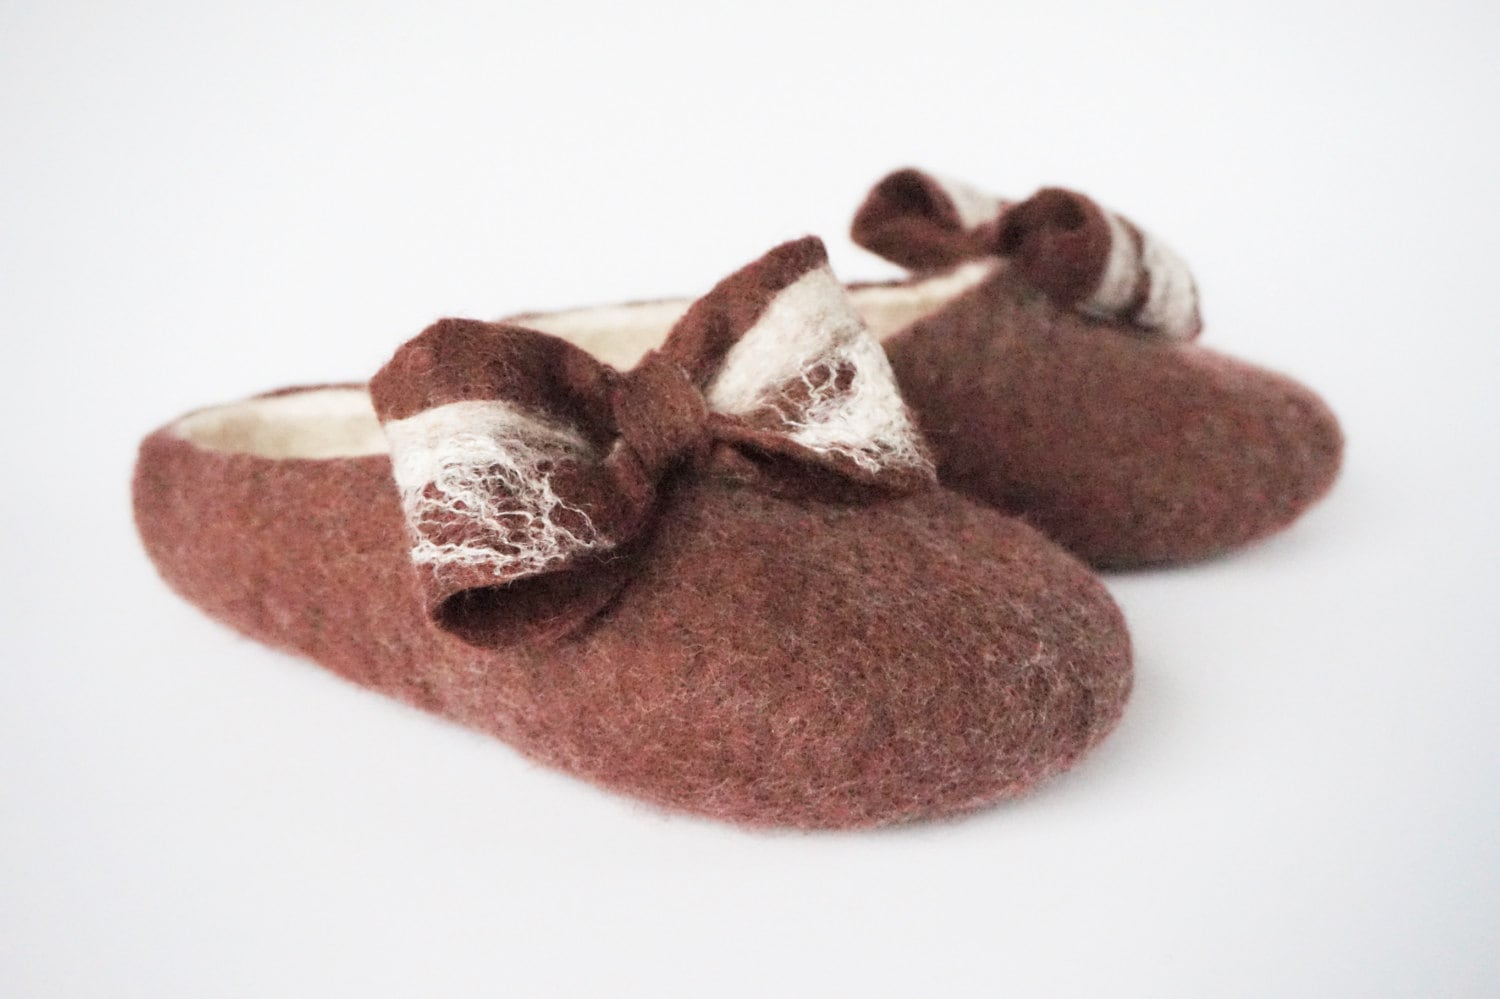 84a9132efeb Women felted wool slippers, bow-tie slippers, felt slippers brown, wool  felt clogs, felted home shoes, felted womens slippers, felted clogs